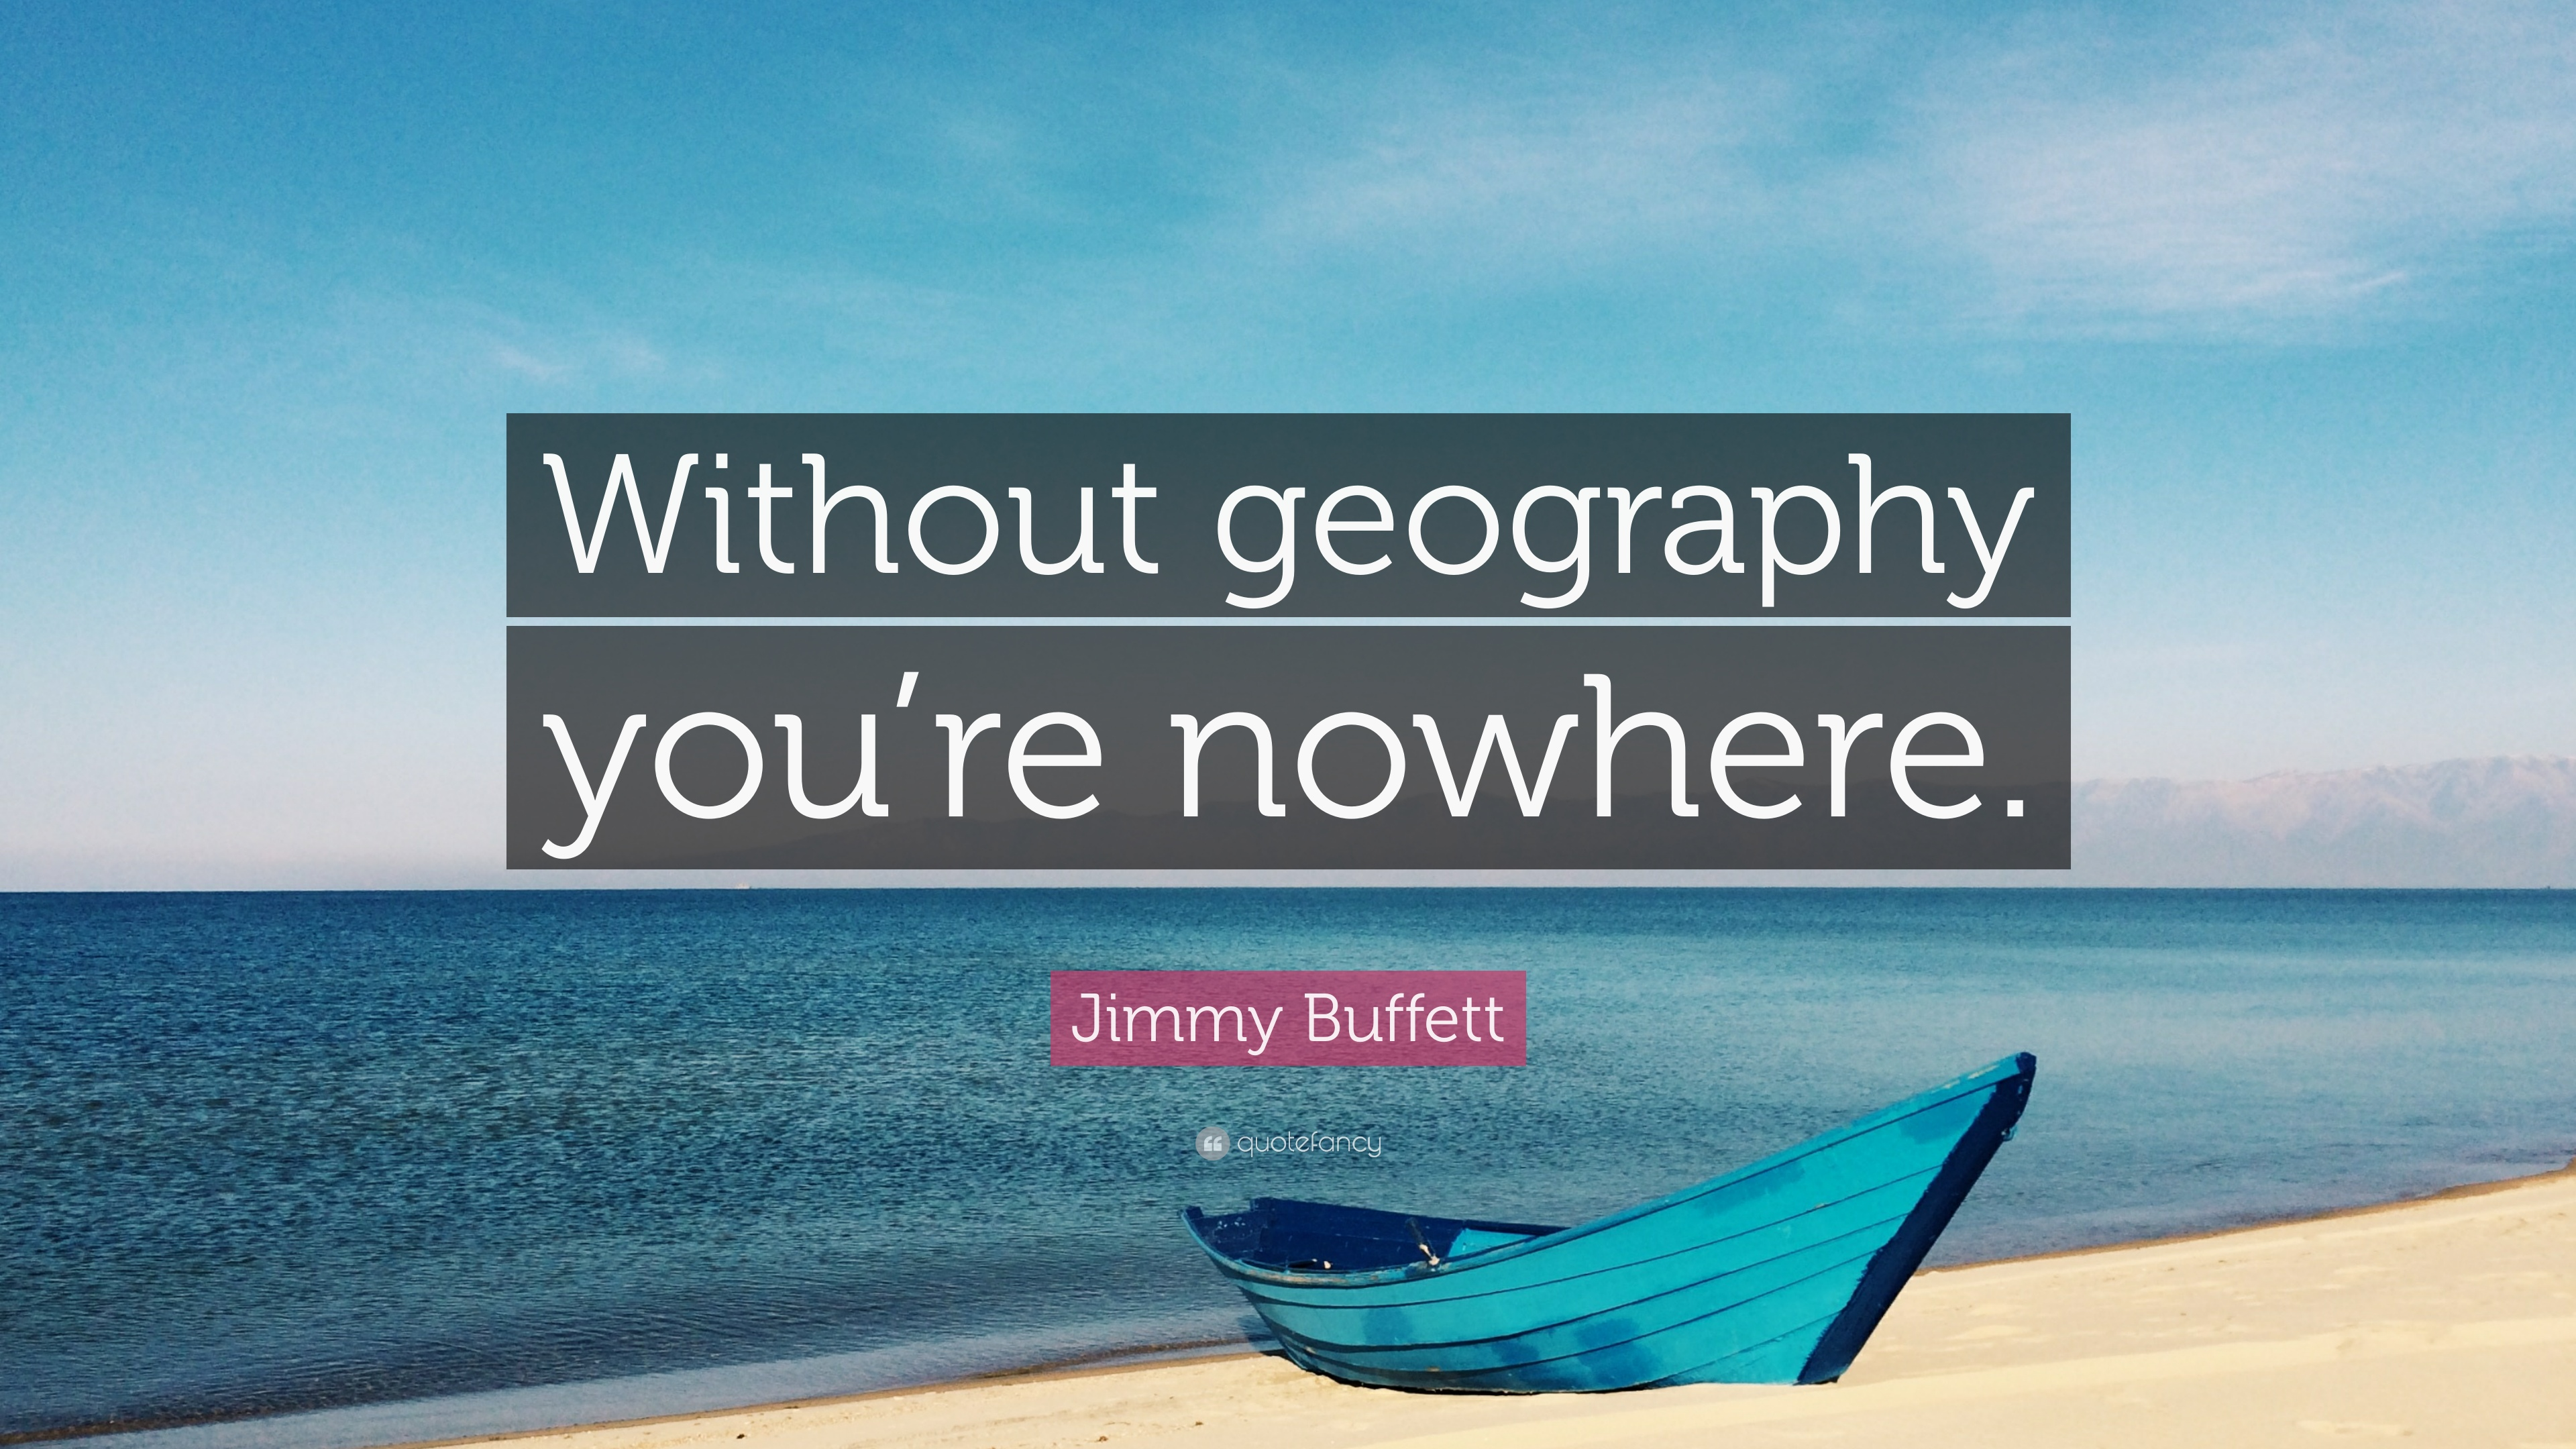 Jimmy Buffett Wallpaper 57904 Usbdata